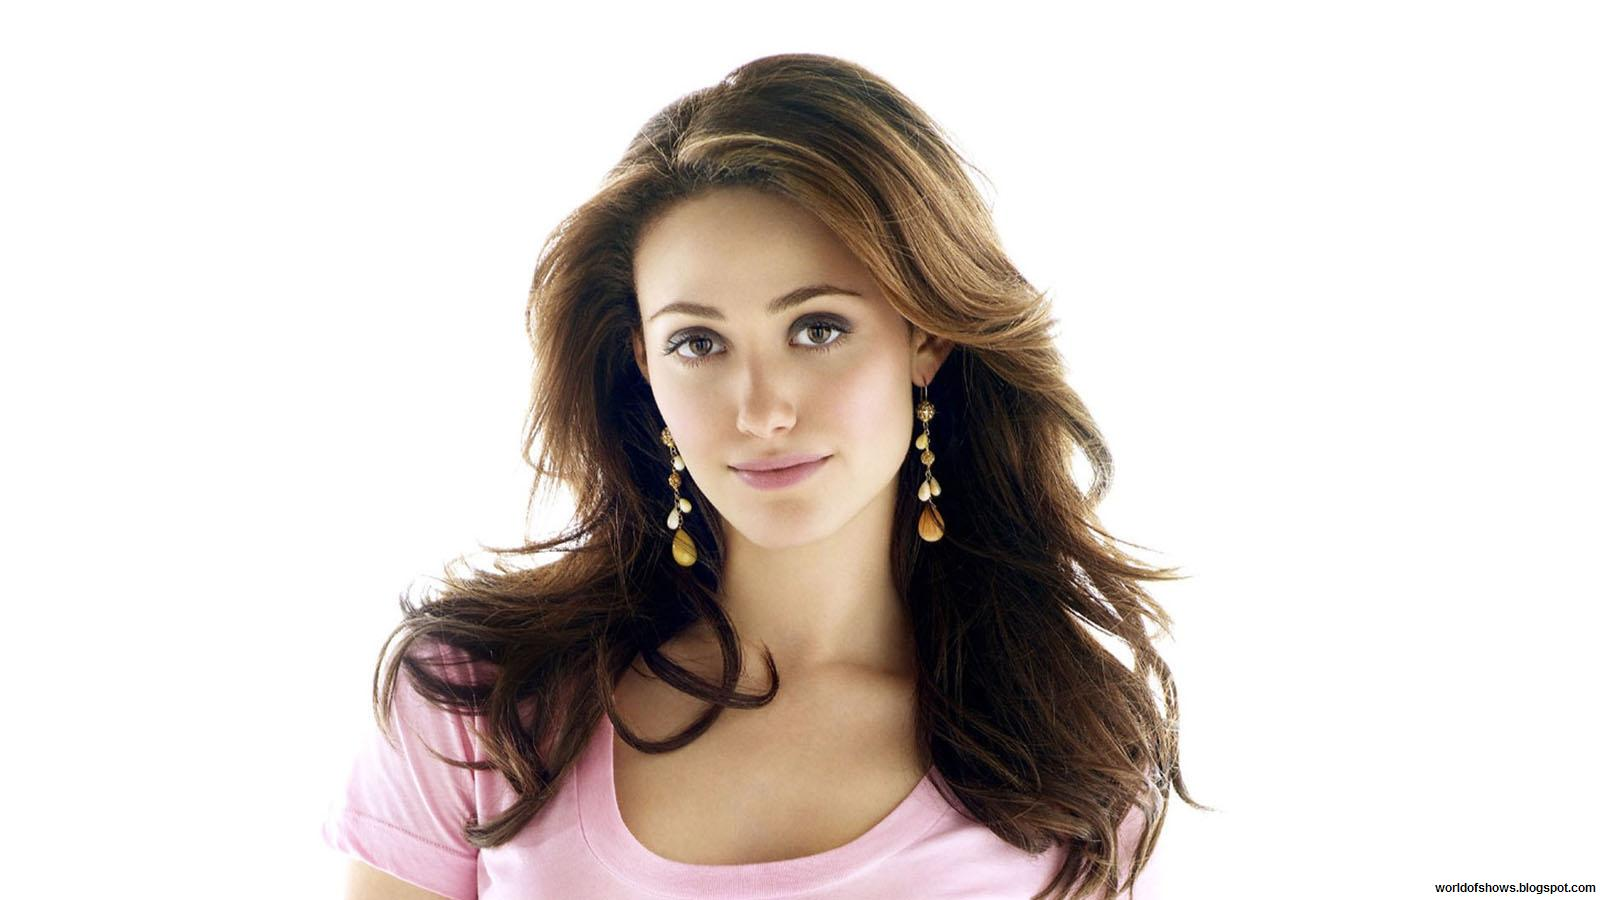 Emmy Rossum Beautiful Face Shameless Image Gallery And Hd Wallpapers